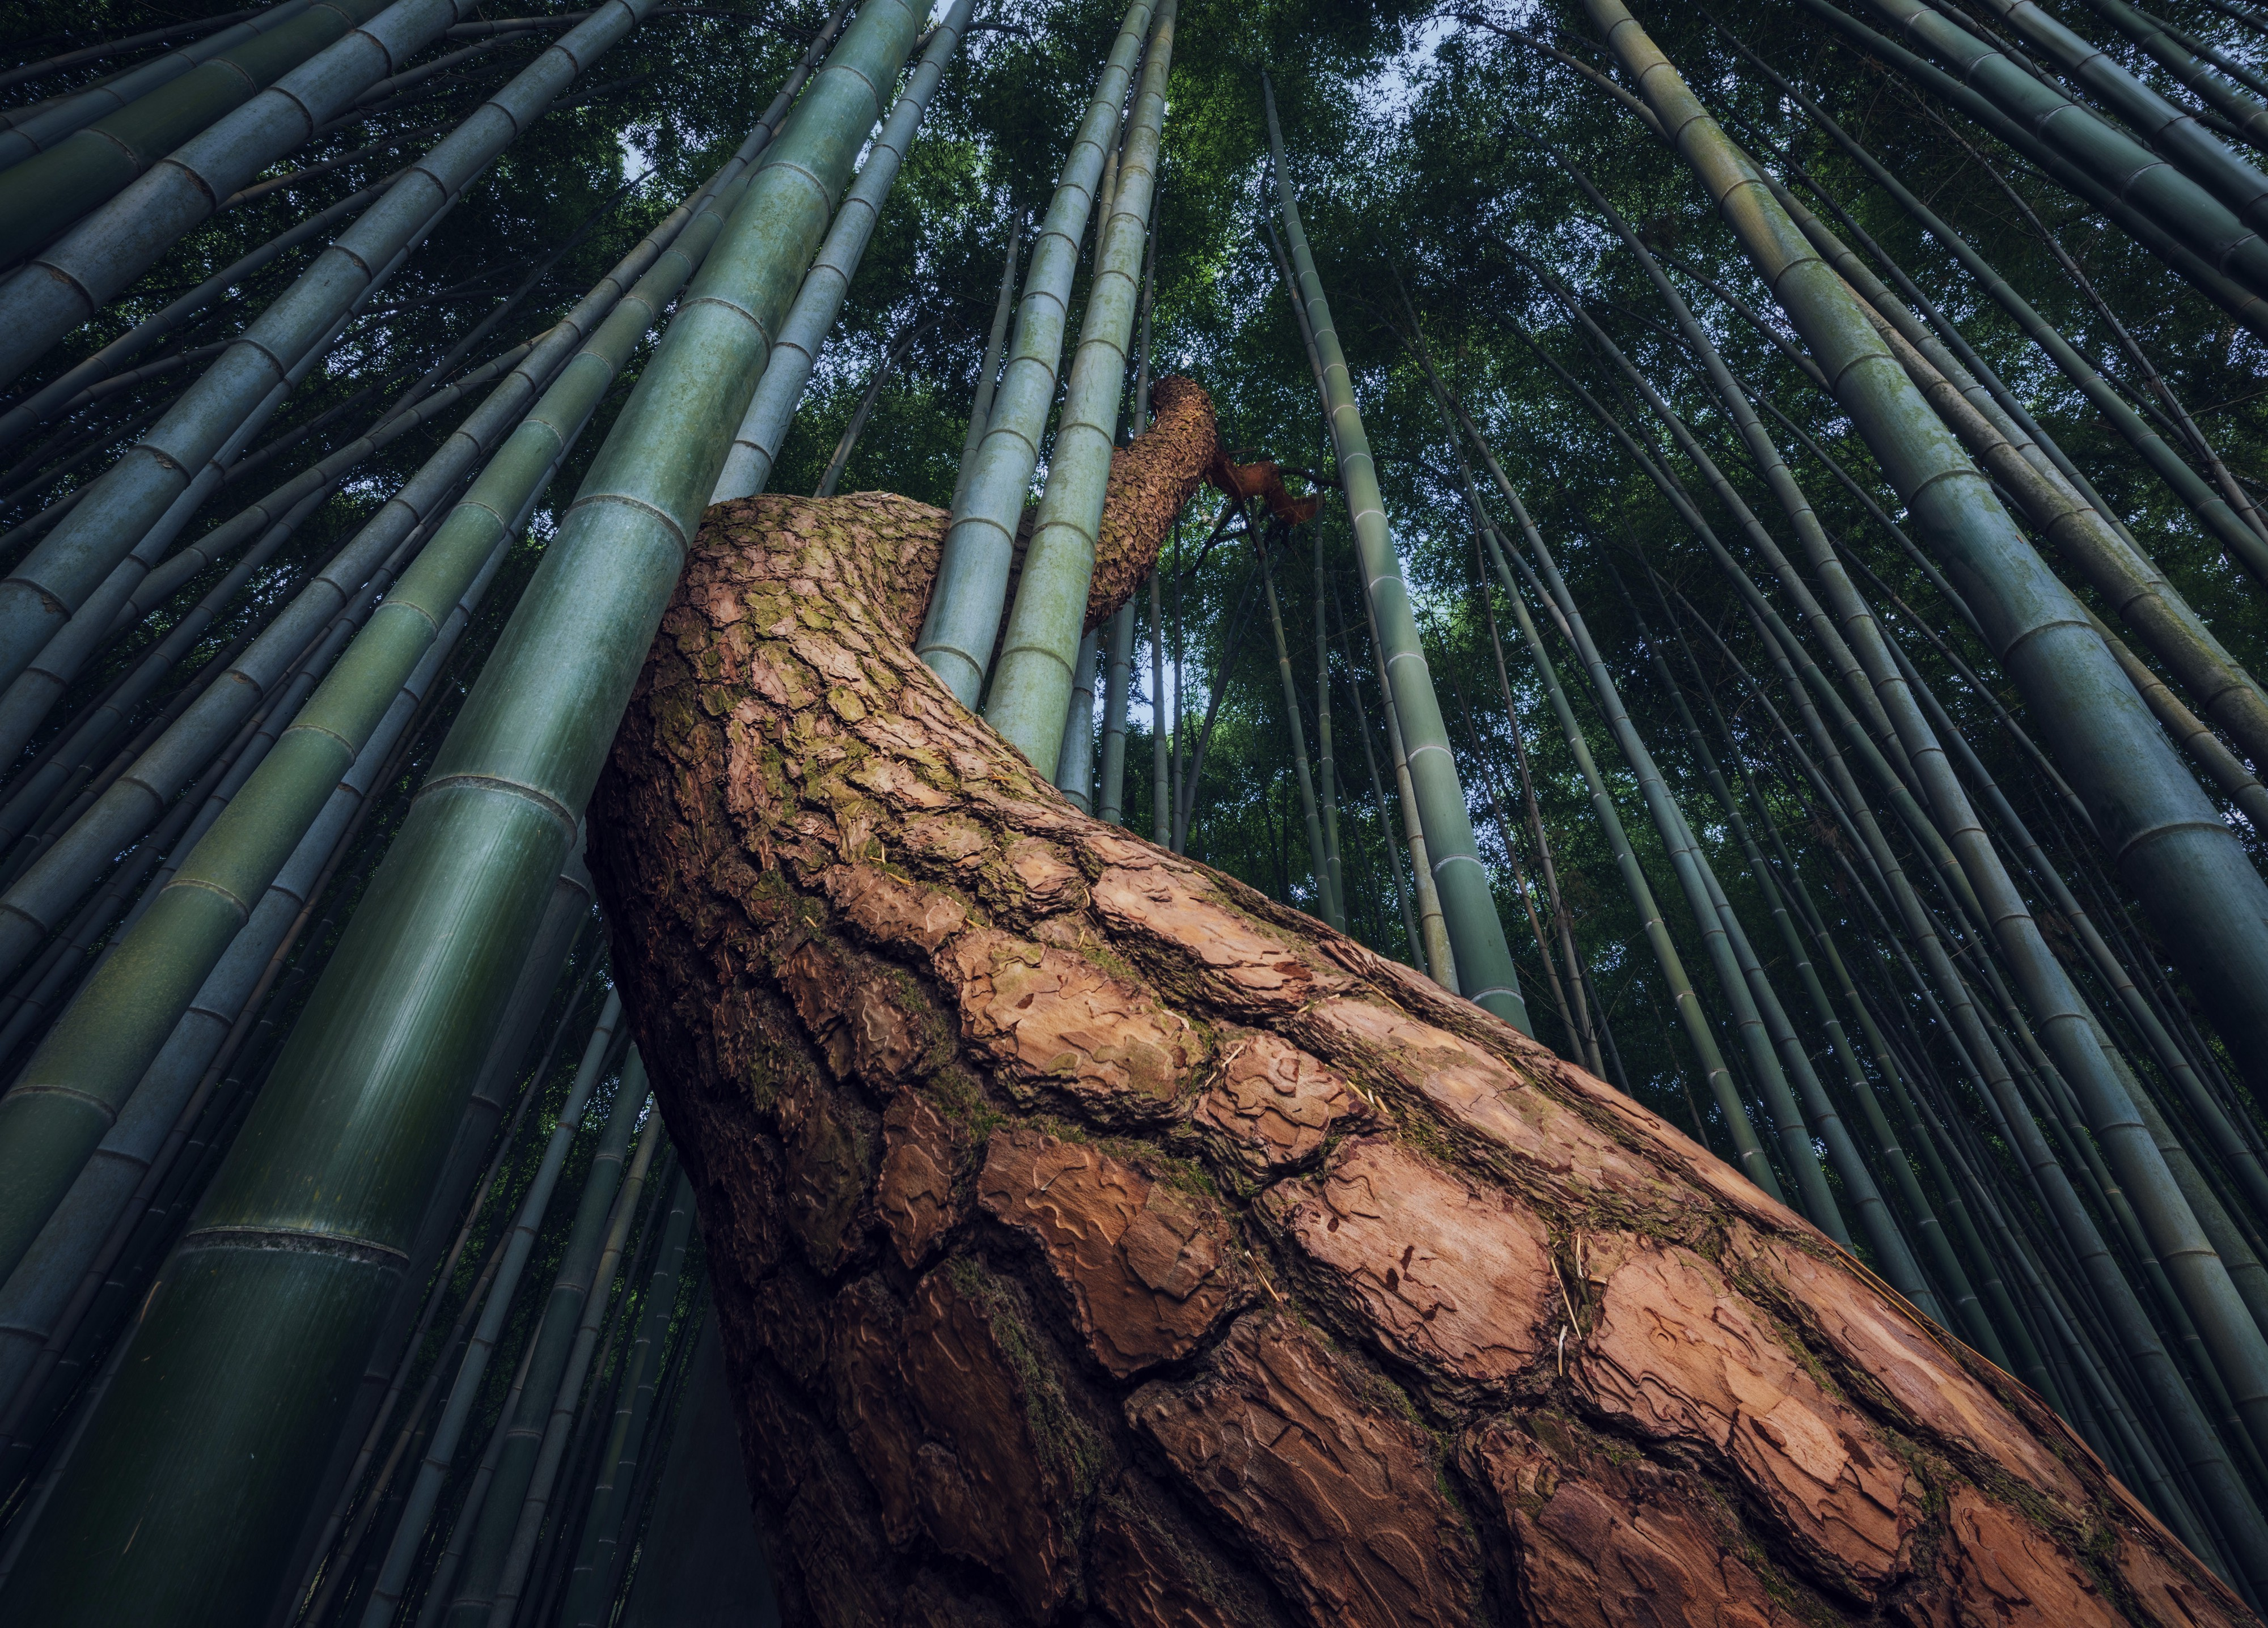 A brown barked tree snakes up through very tall bamboo, wrapping its trunk around the bamboo stalks in an embrace